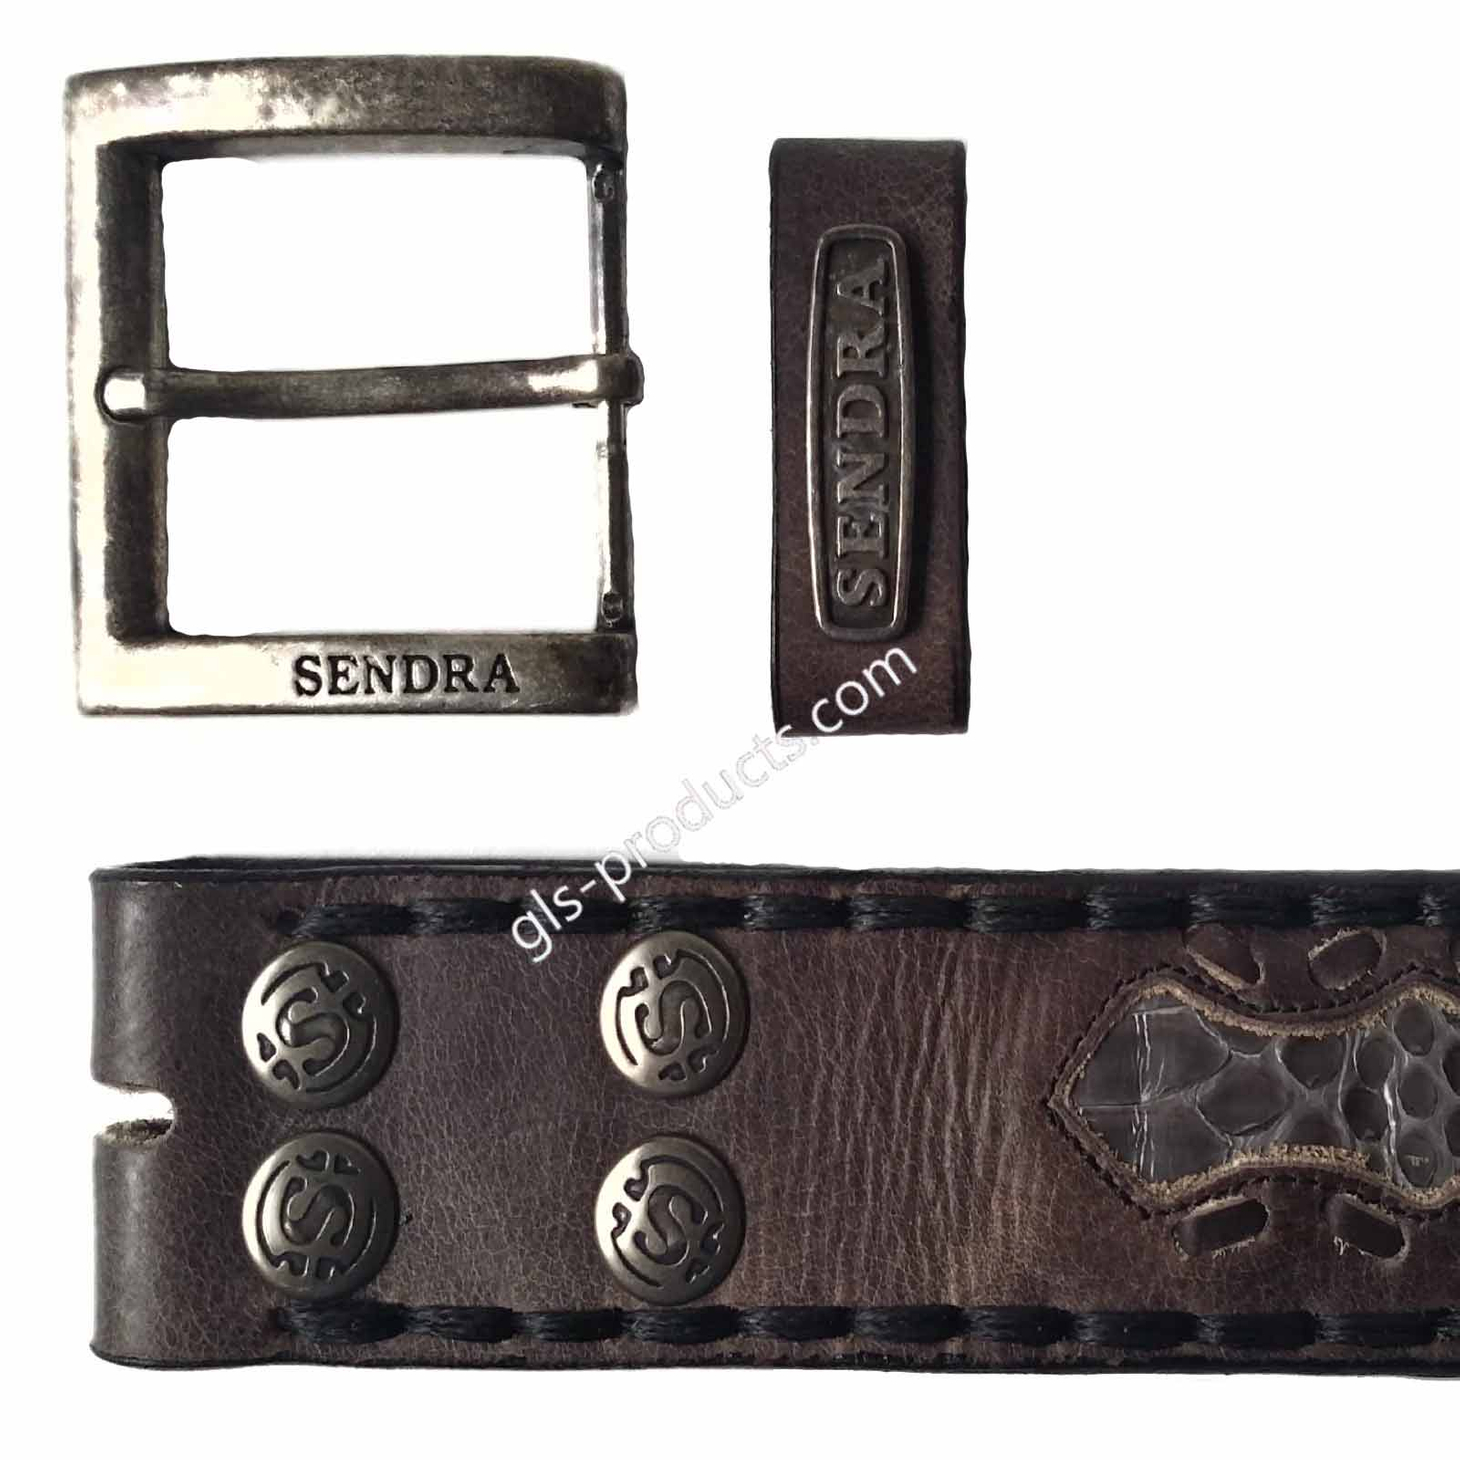 Sendra Leather Belt 8347 – Picture 2